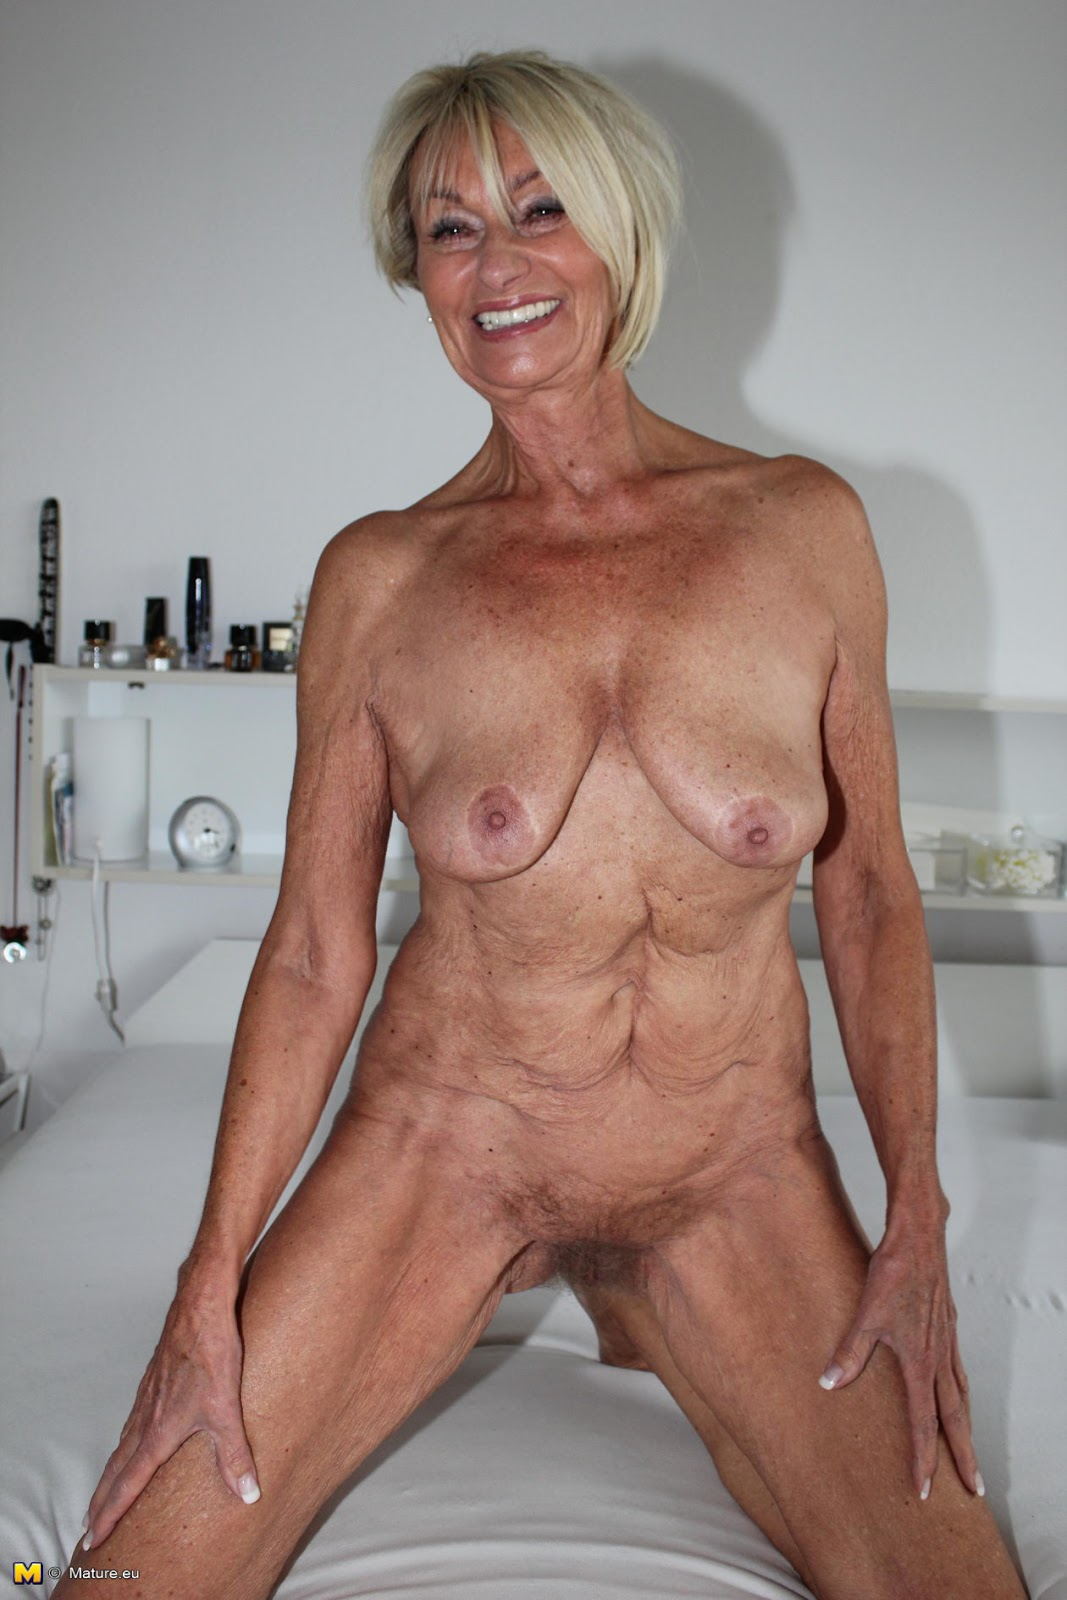 70 year old nude women pussy opinion